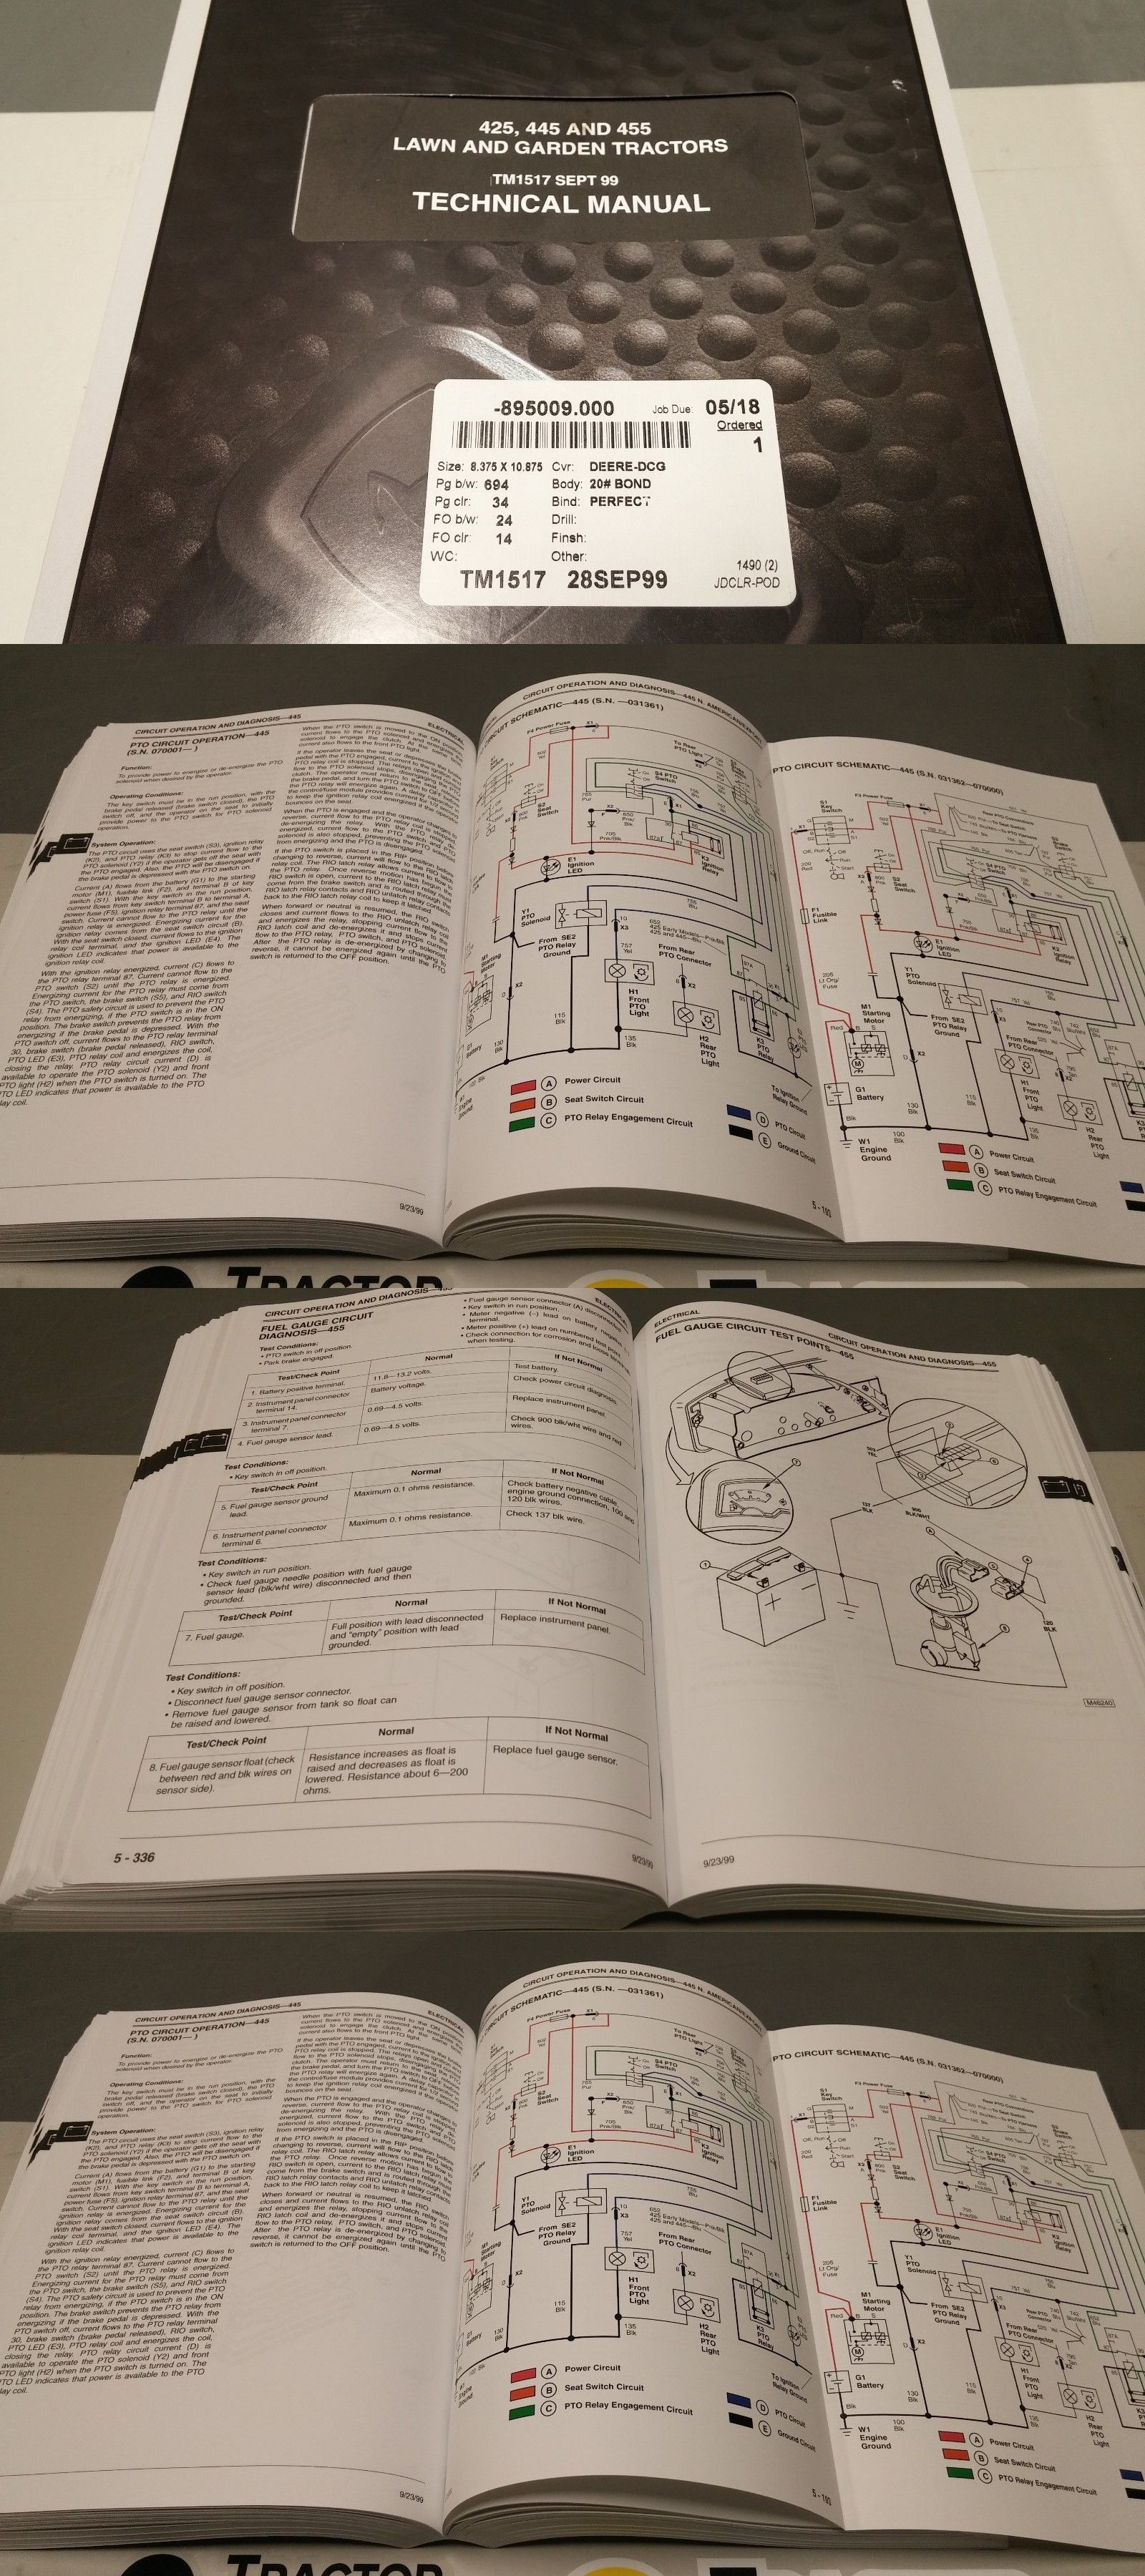 John Deere 425 Carburetor Problems Tractor Wiring Diagrams Manuals And Guides 42229 New 445 455 Technical Rh Pinterest Com